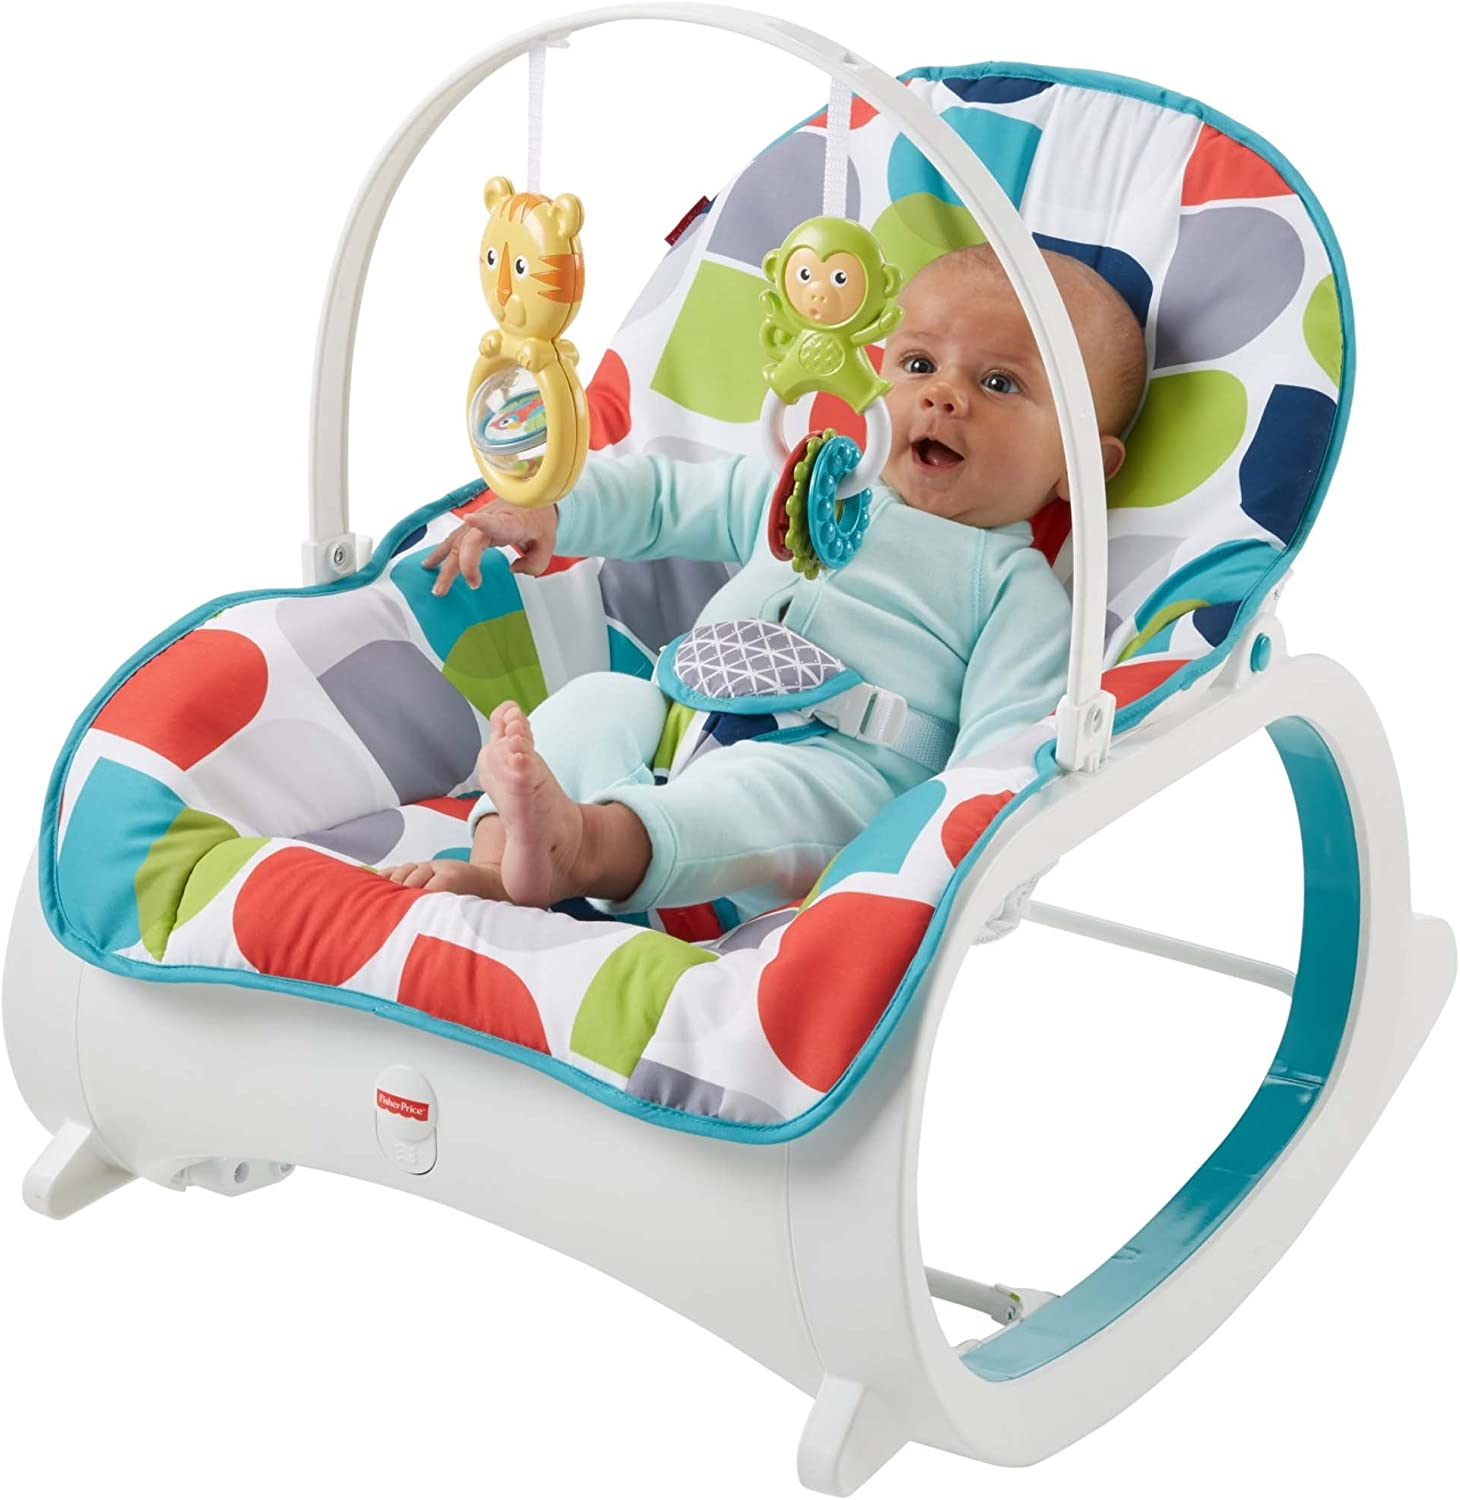 Hamaca de bebé Fisher Price